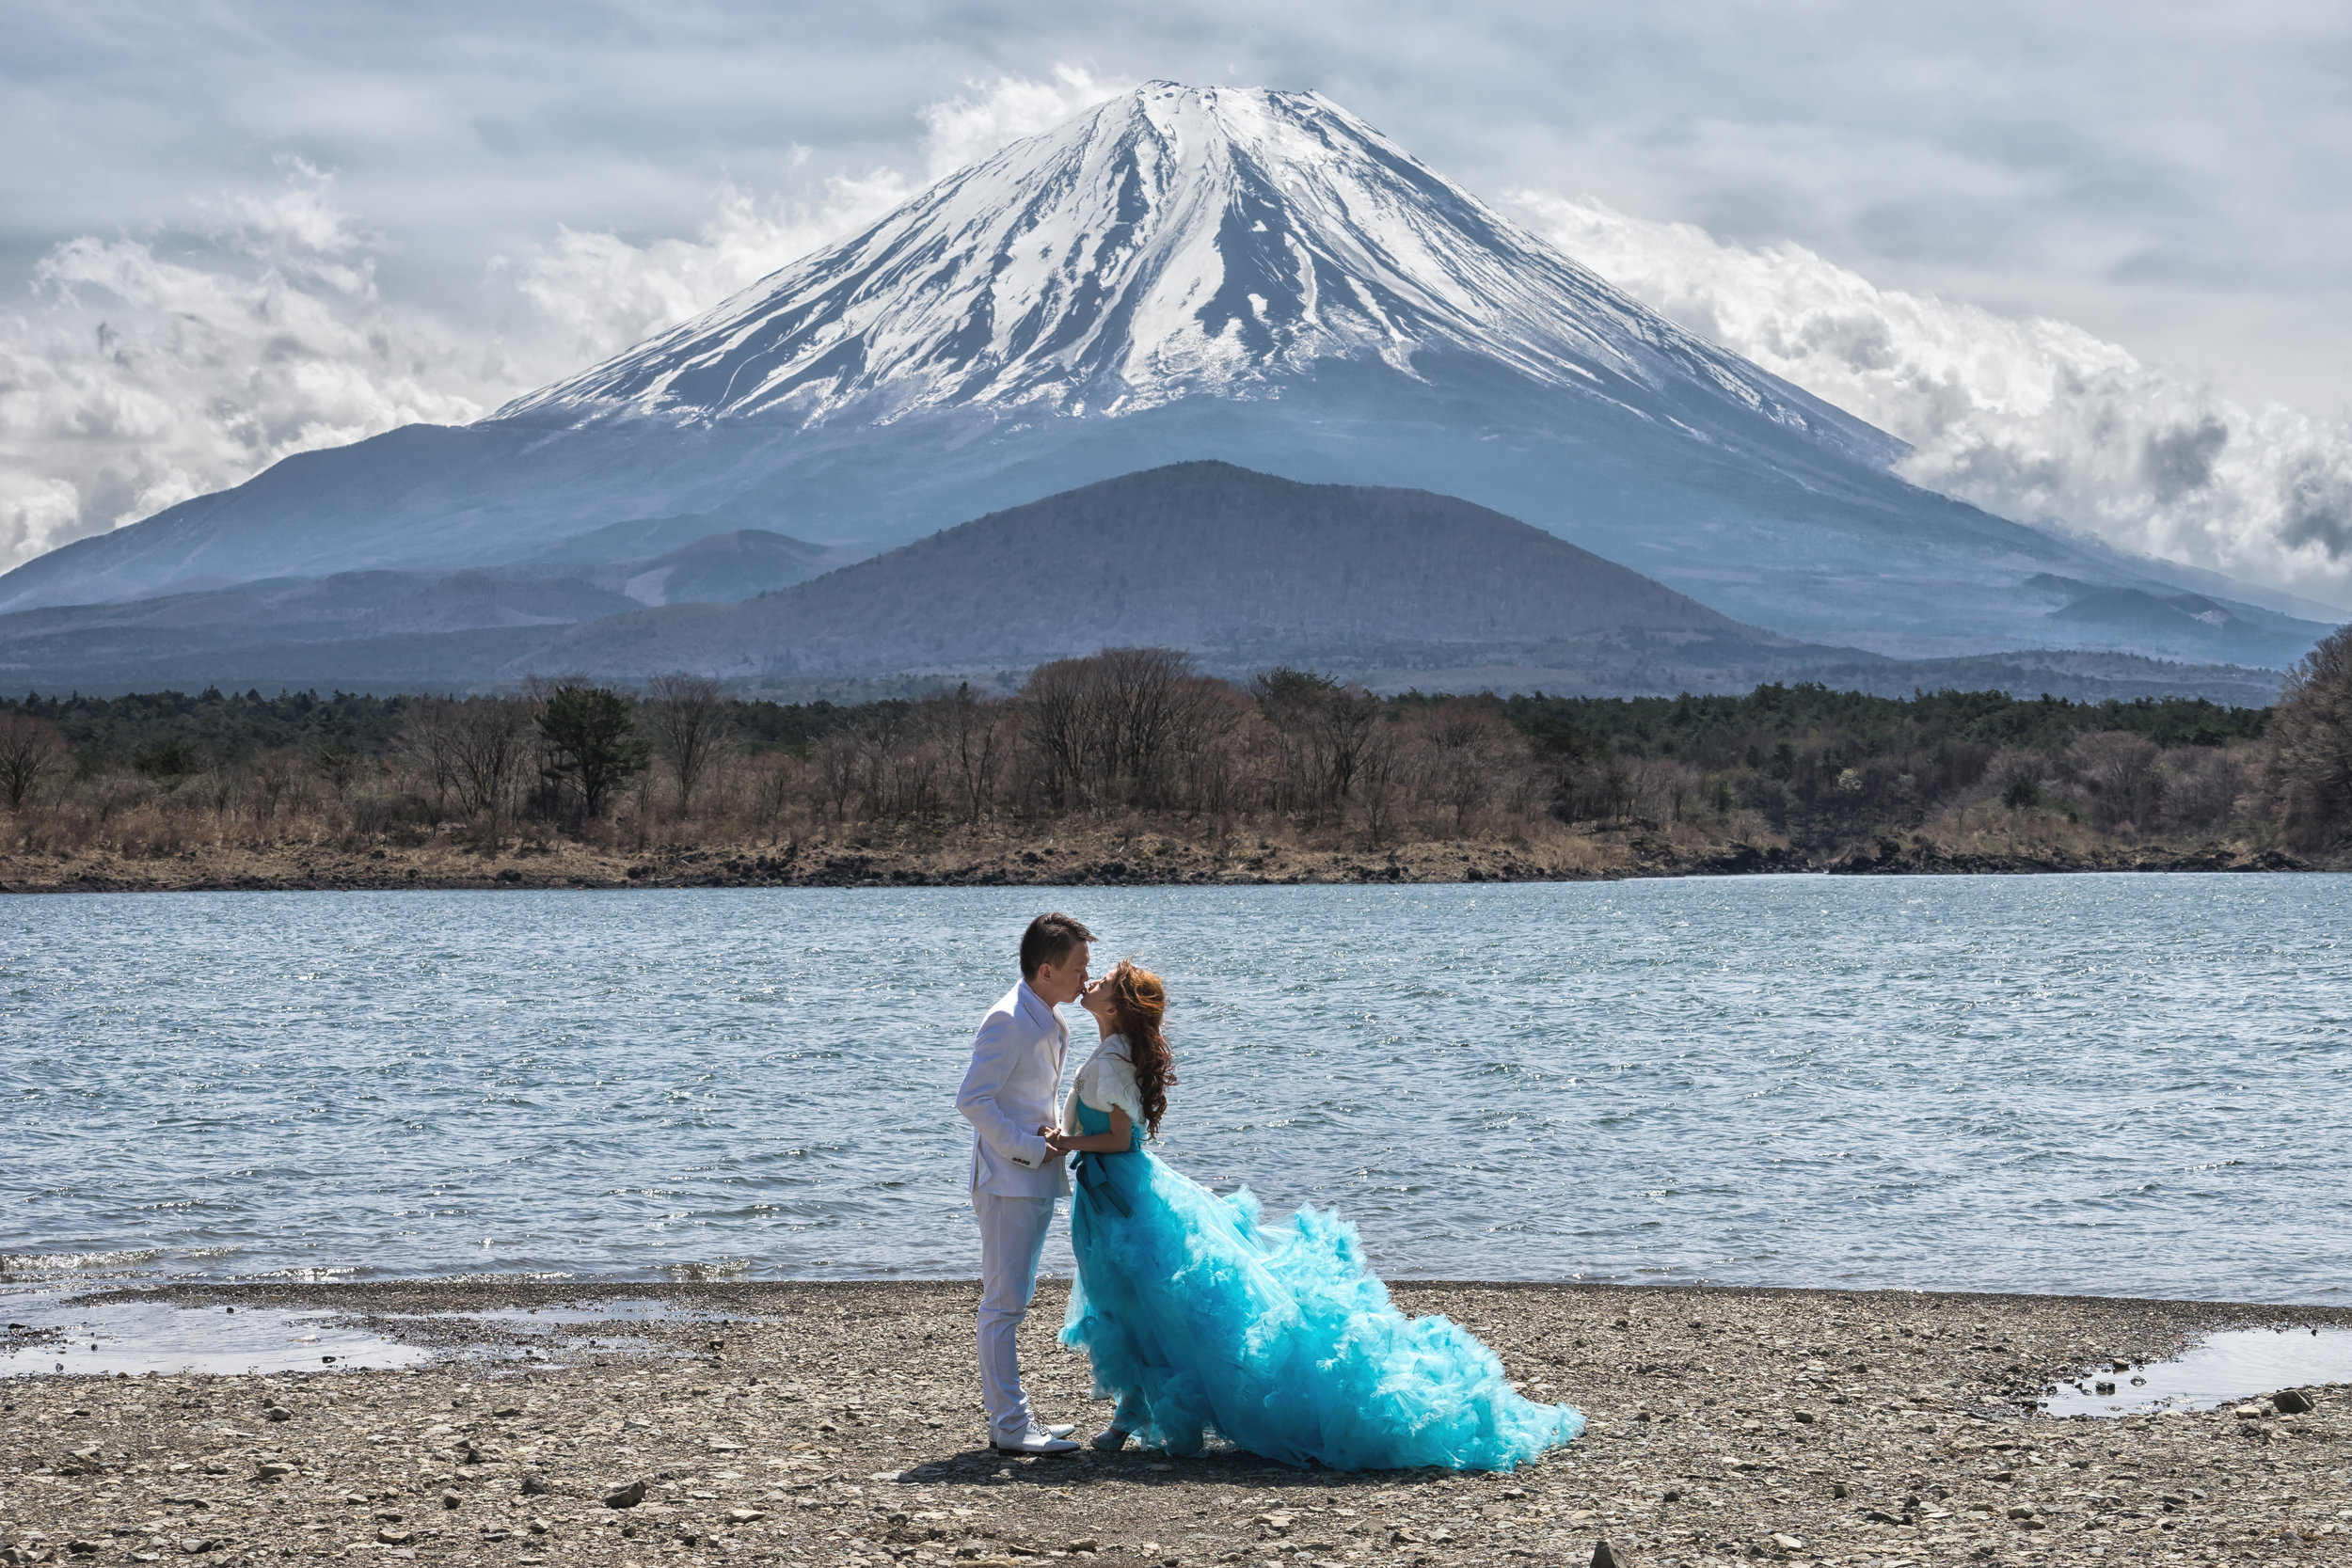 Beautiful weather in Japan, in front of the majestic Fuji Mountain. Photo credits:  Kevin Ho Studios.